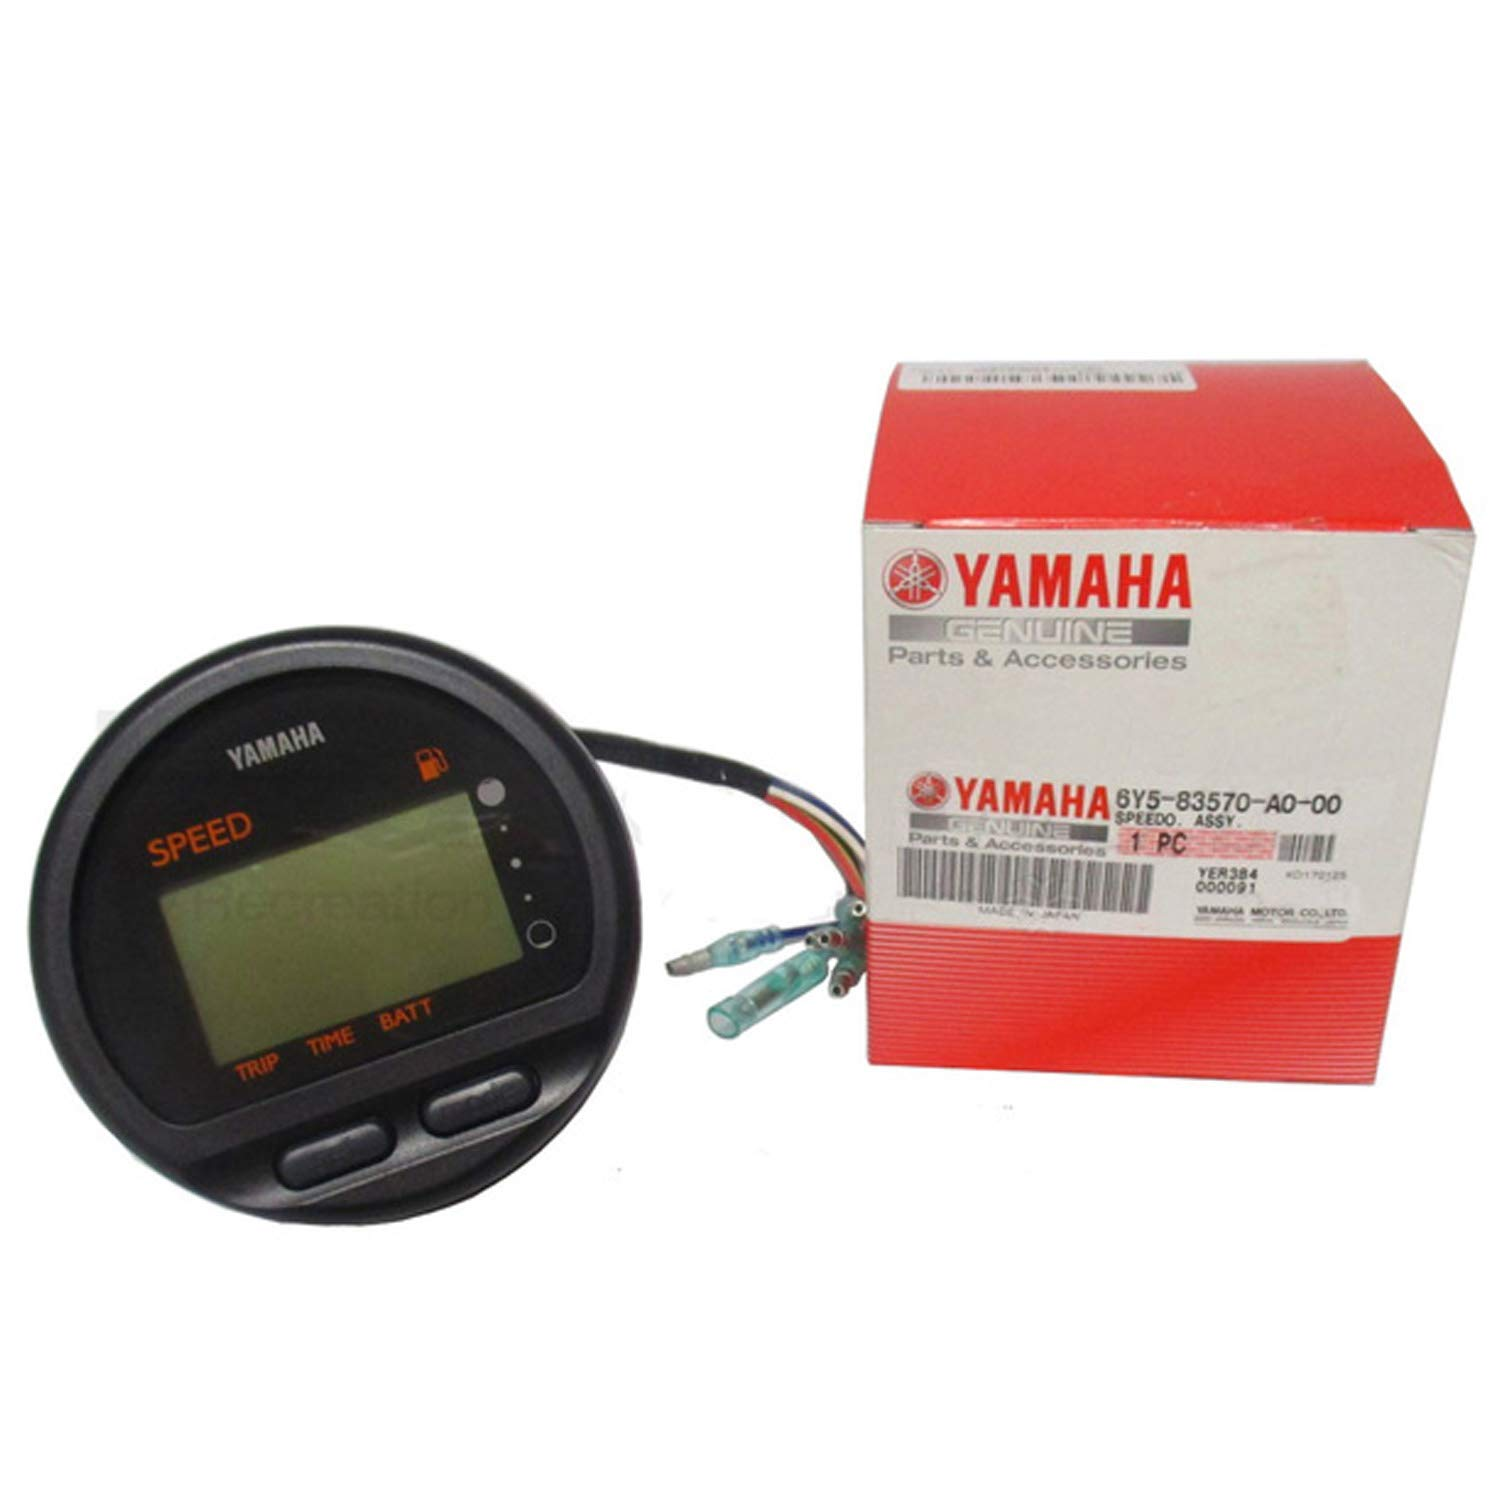 YAMAHA SPEEDOMETER ASSEMBLY OUTBOARD MOTOR 6Y5-83570-A0-00